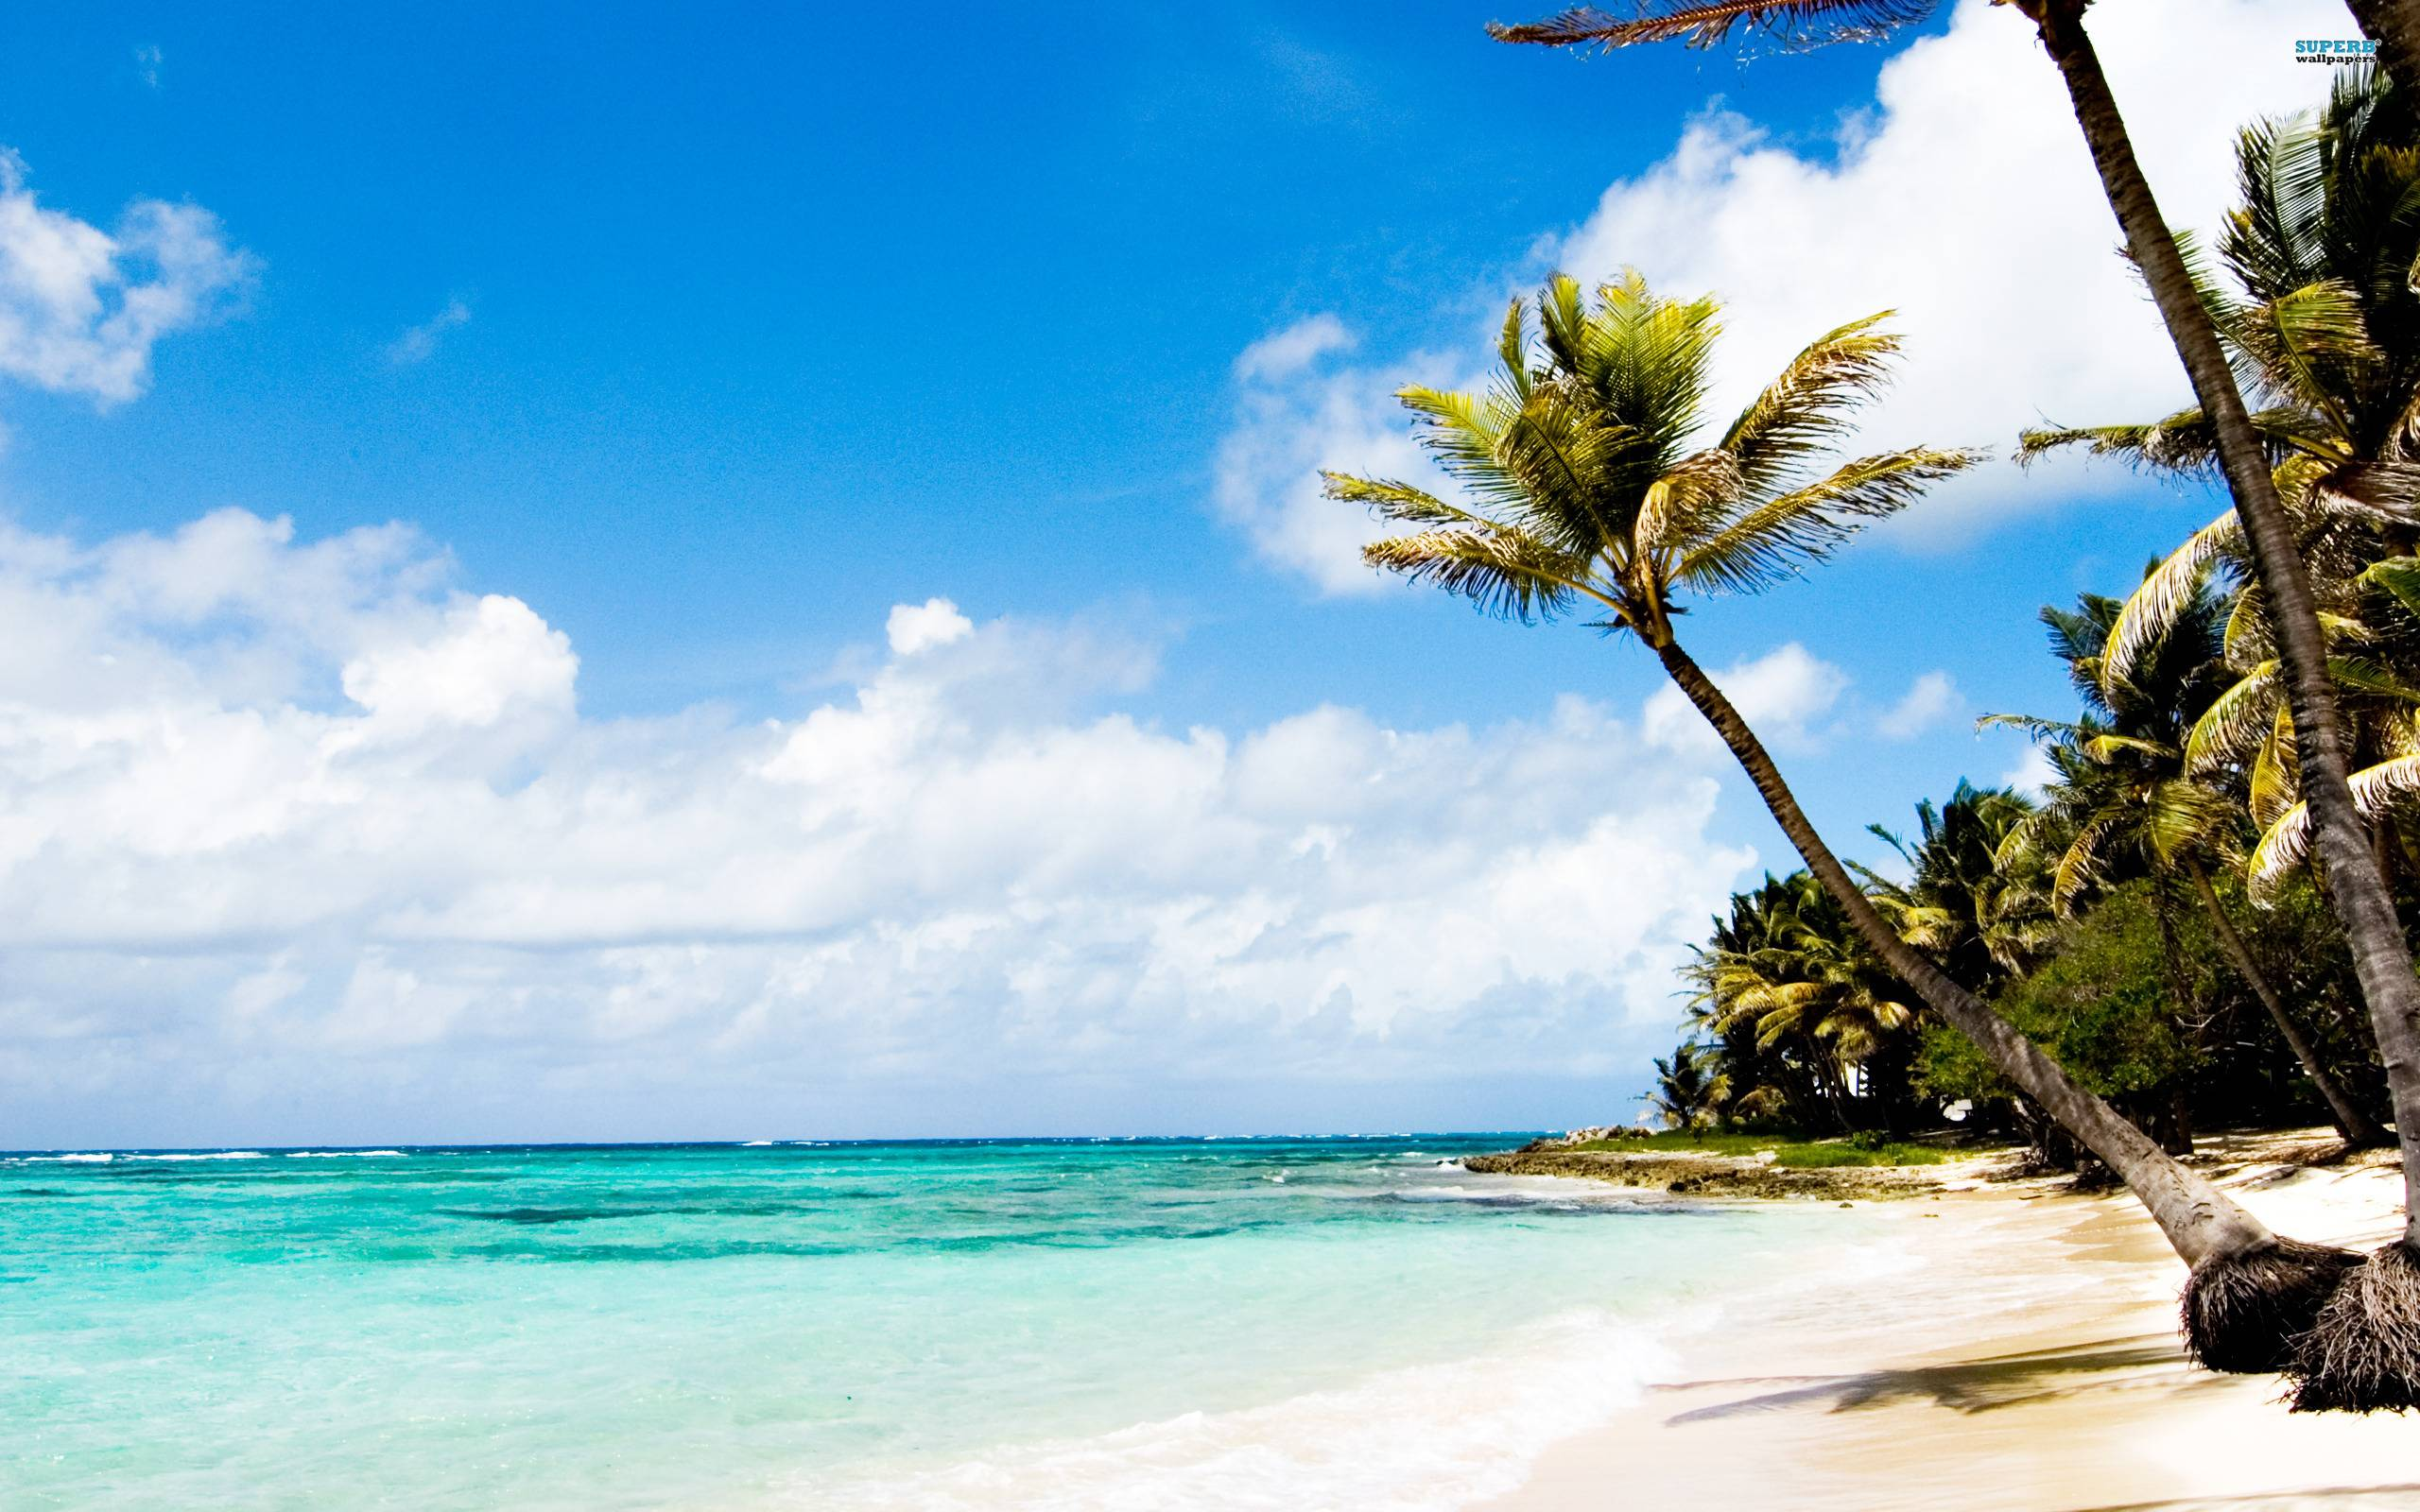 Caribbean Island Wallpapers Posted By Ethan Sellers